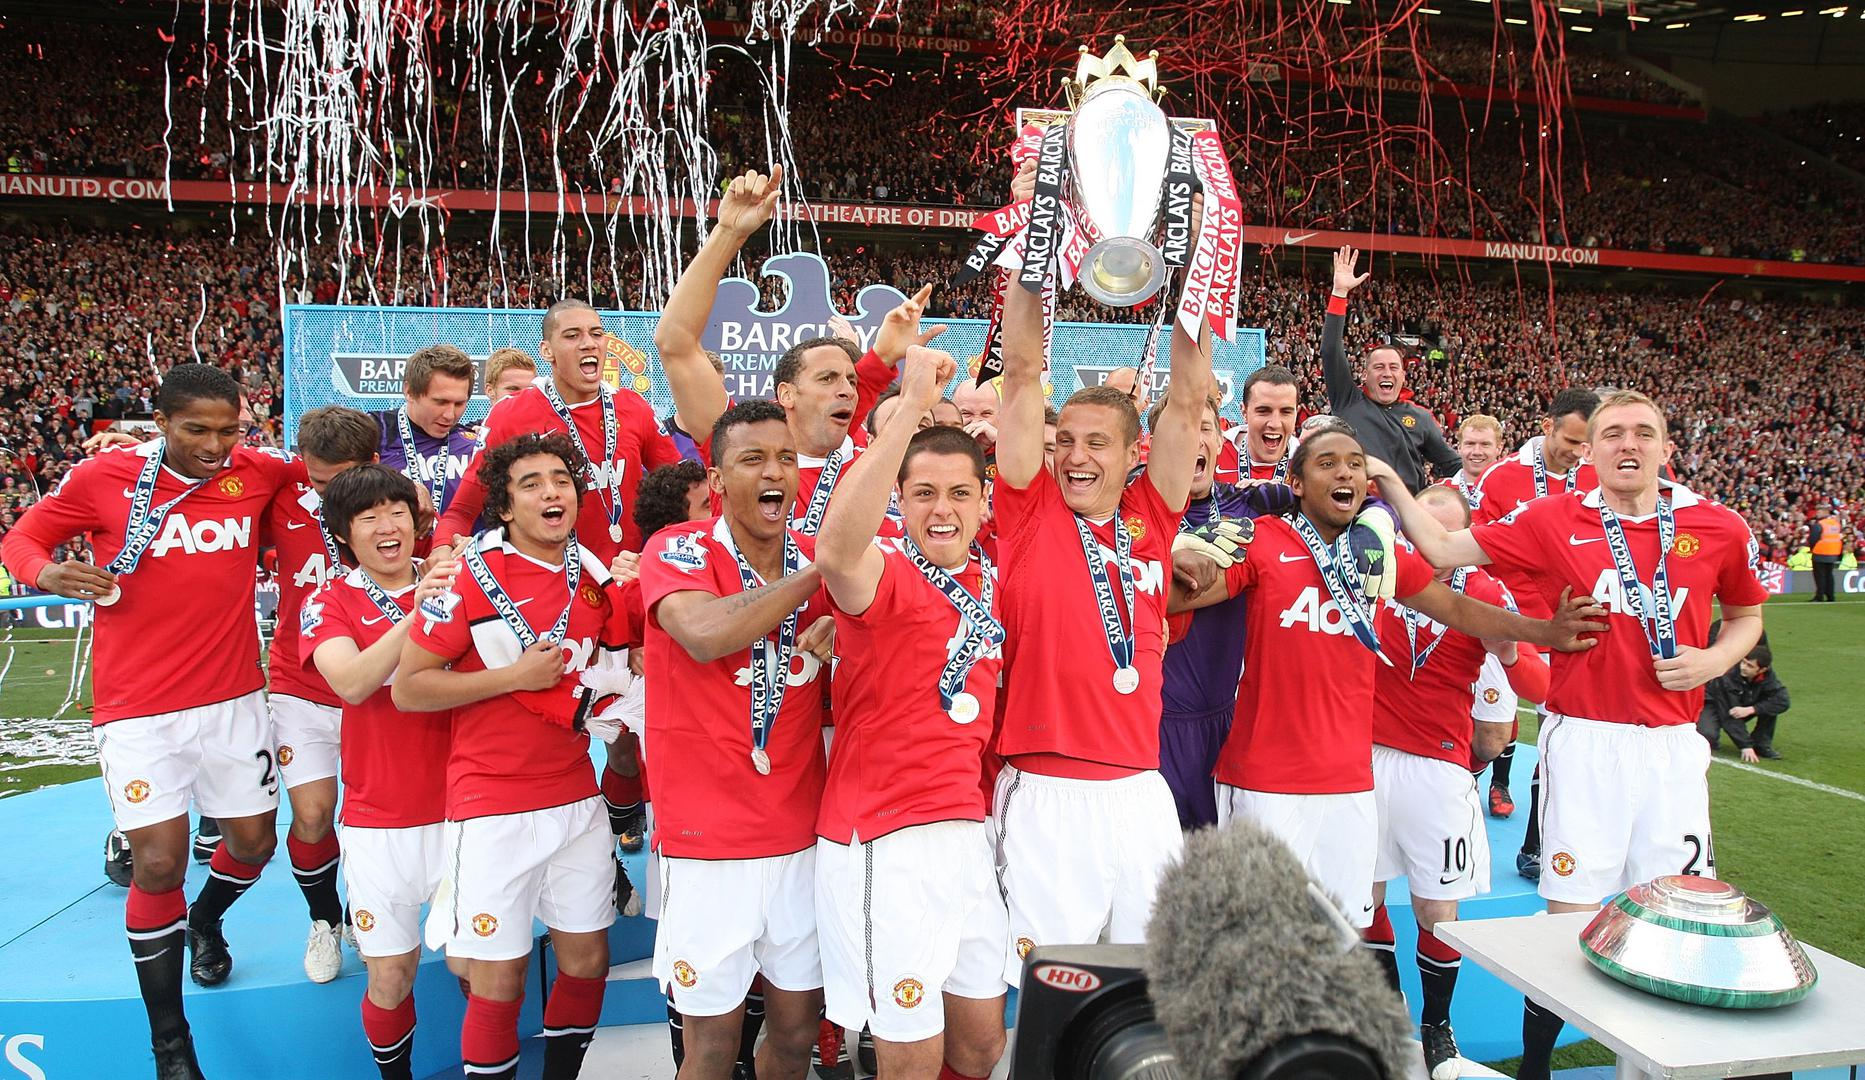 Man Utd lift the Premier League title in 2011